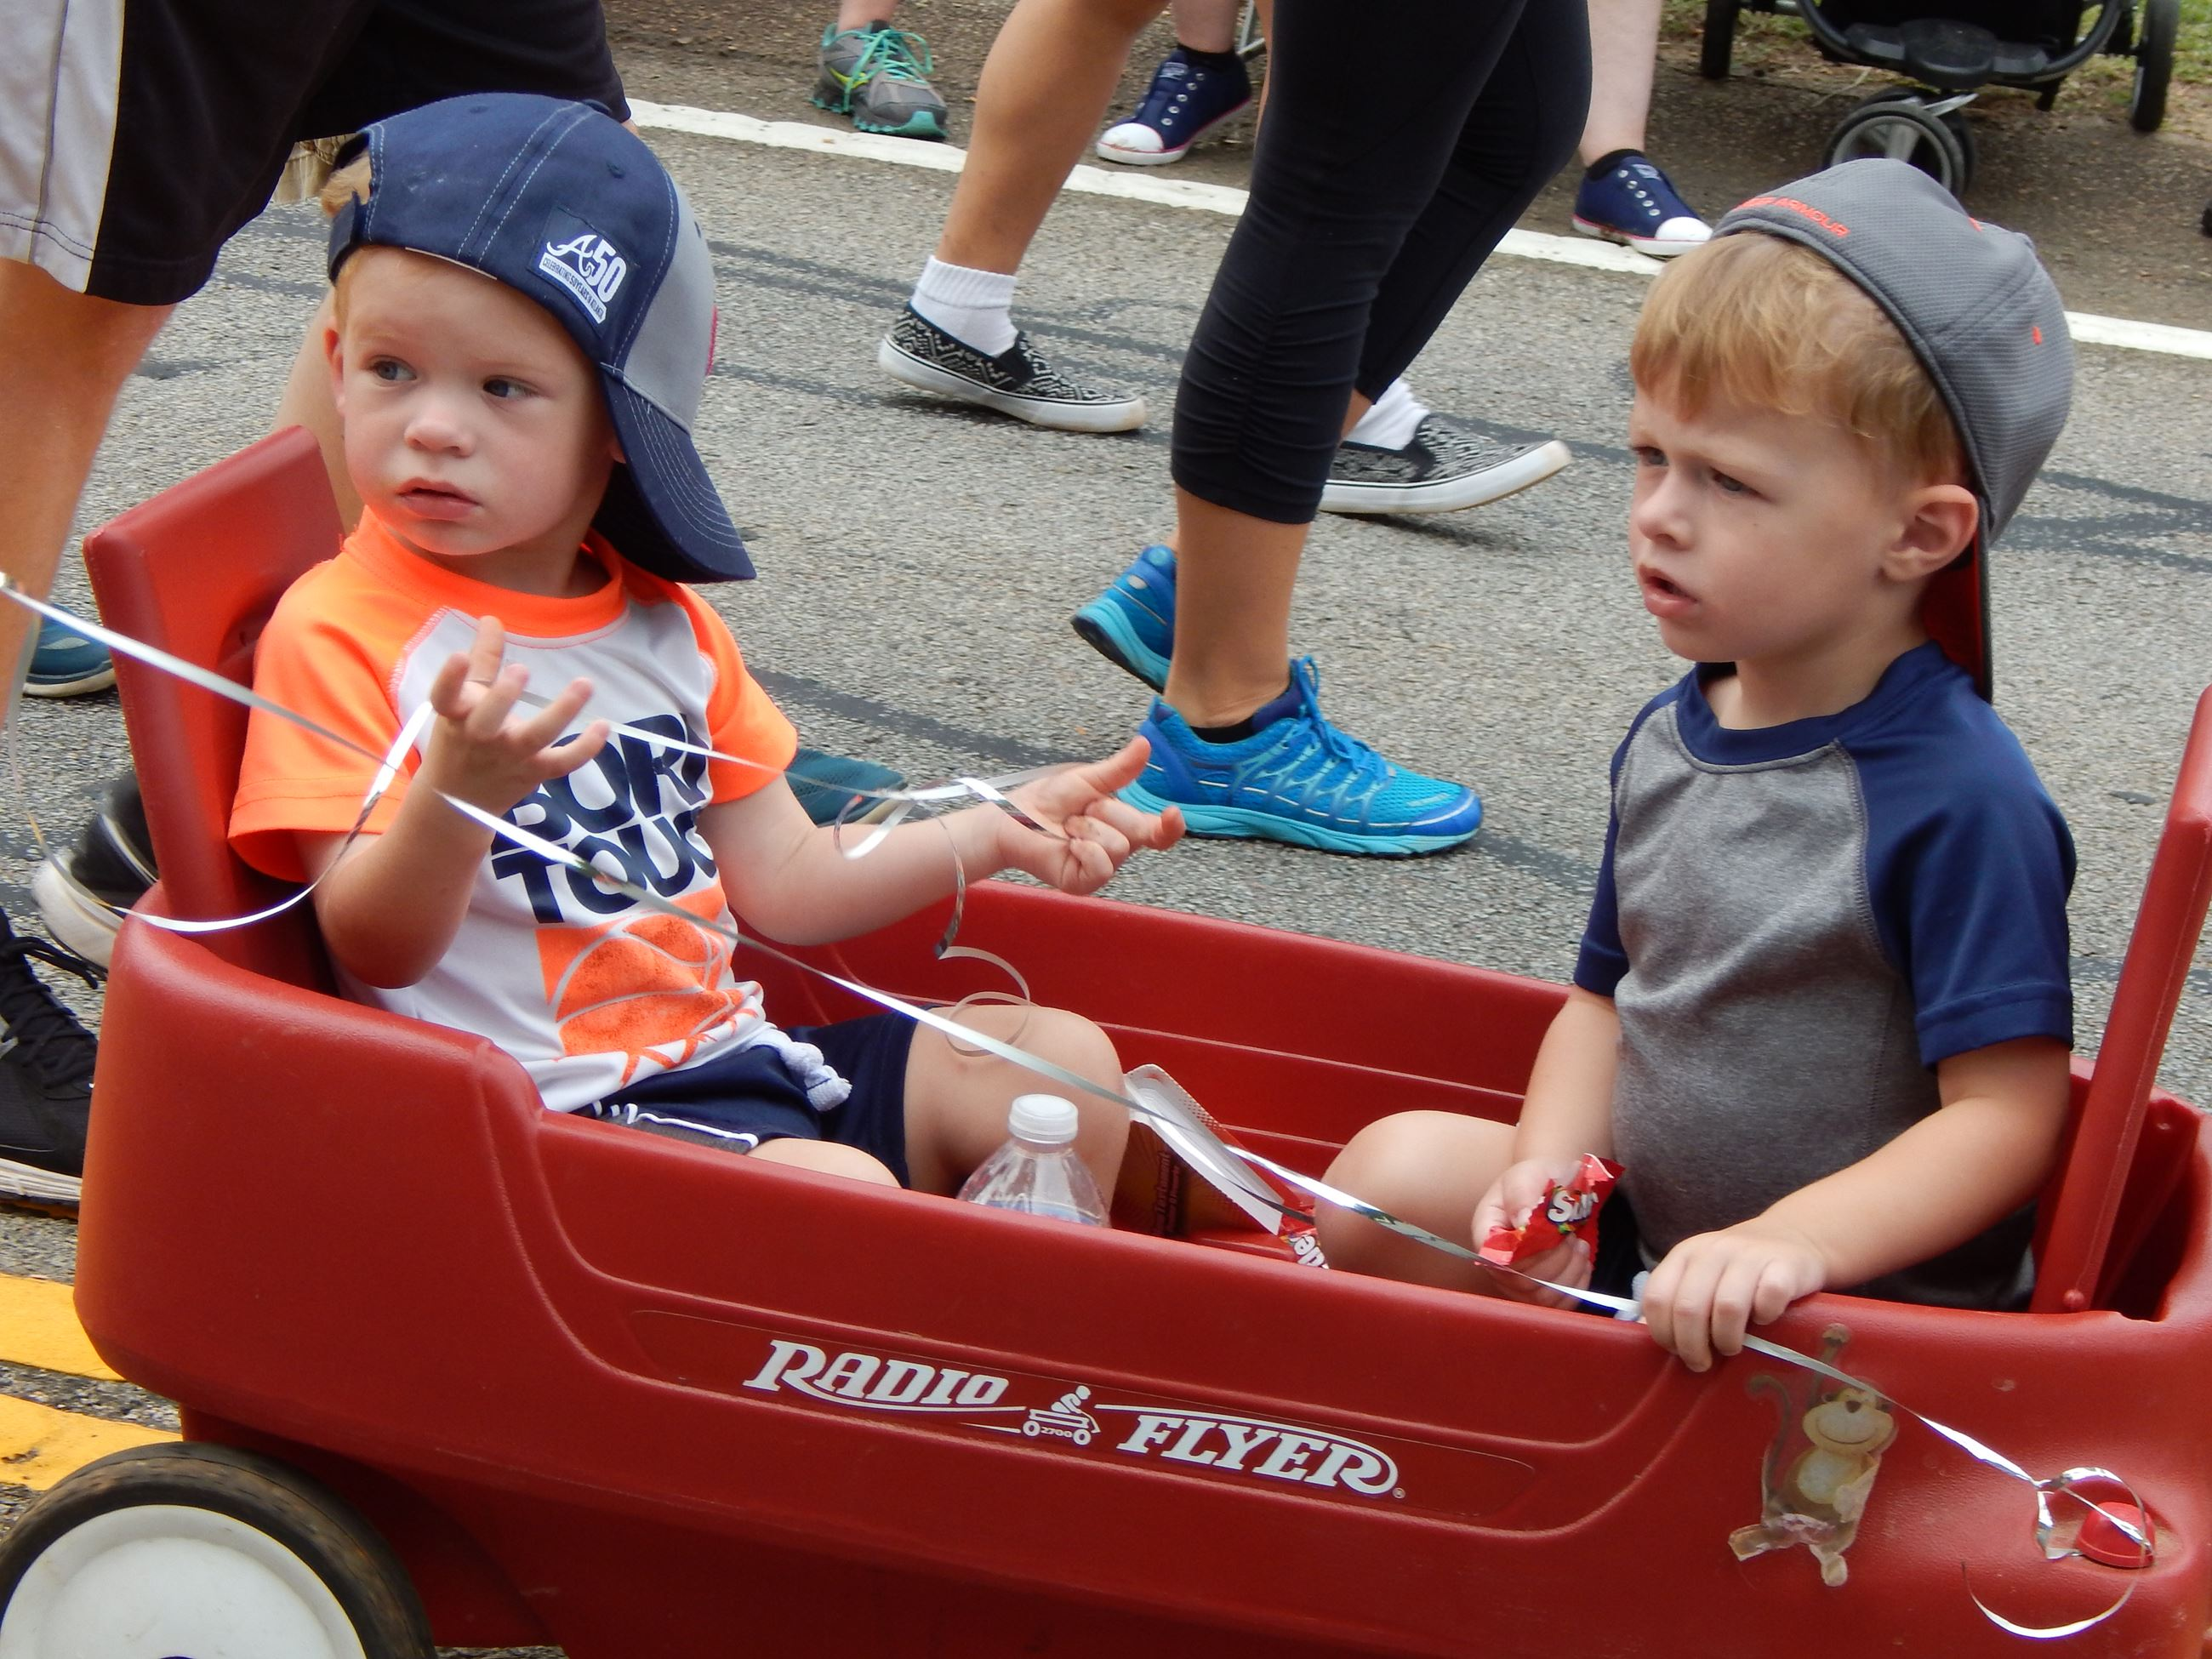 Two young boys in a red wagon.